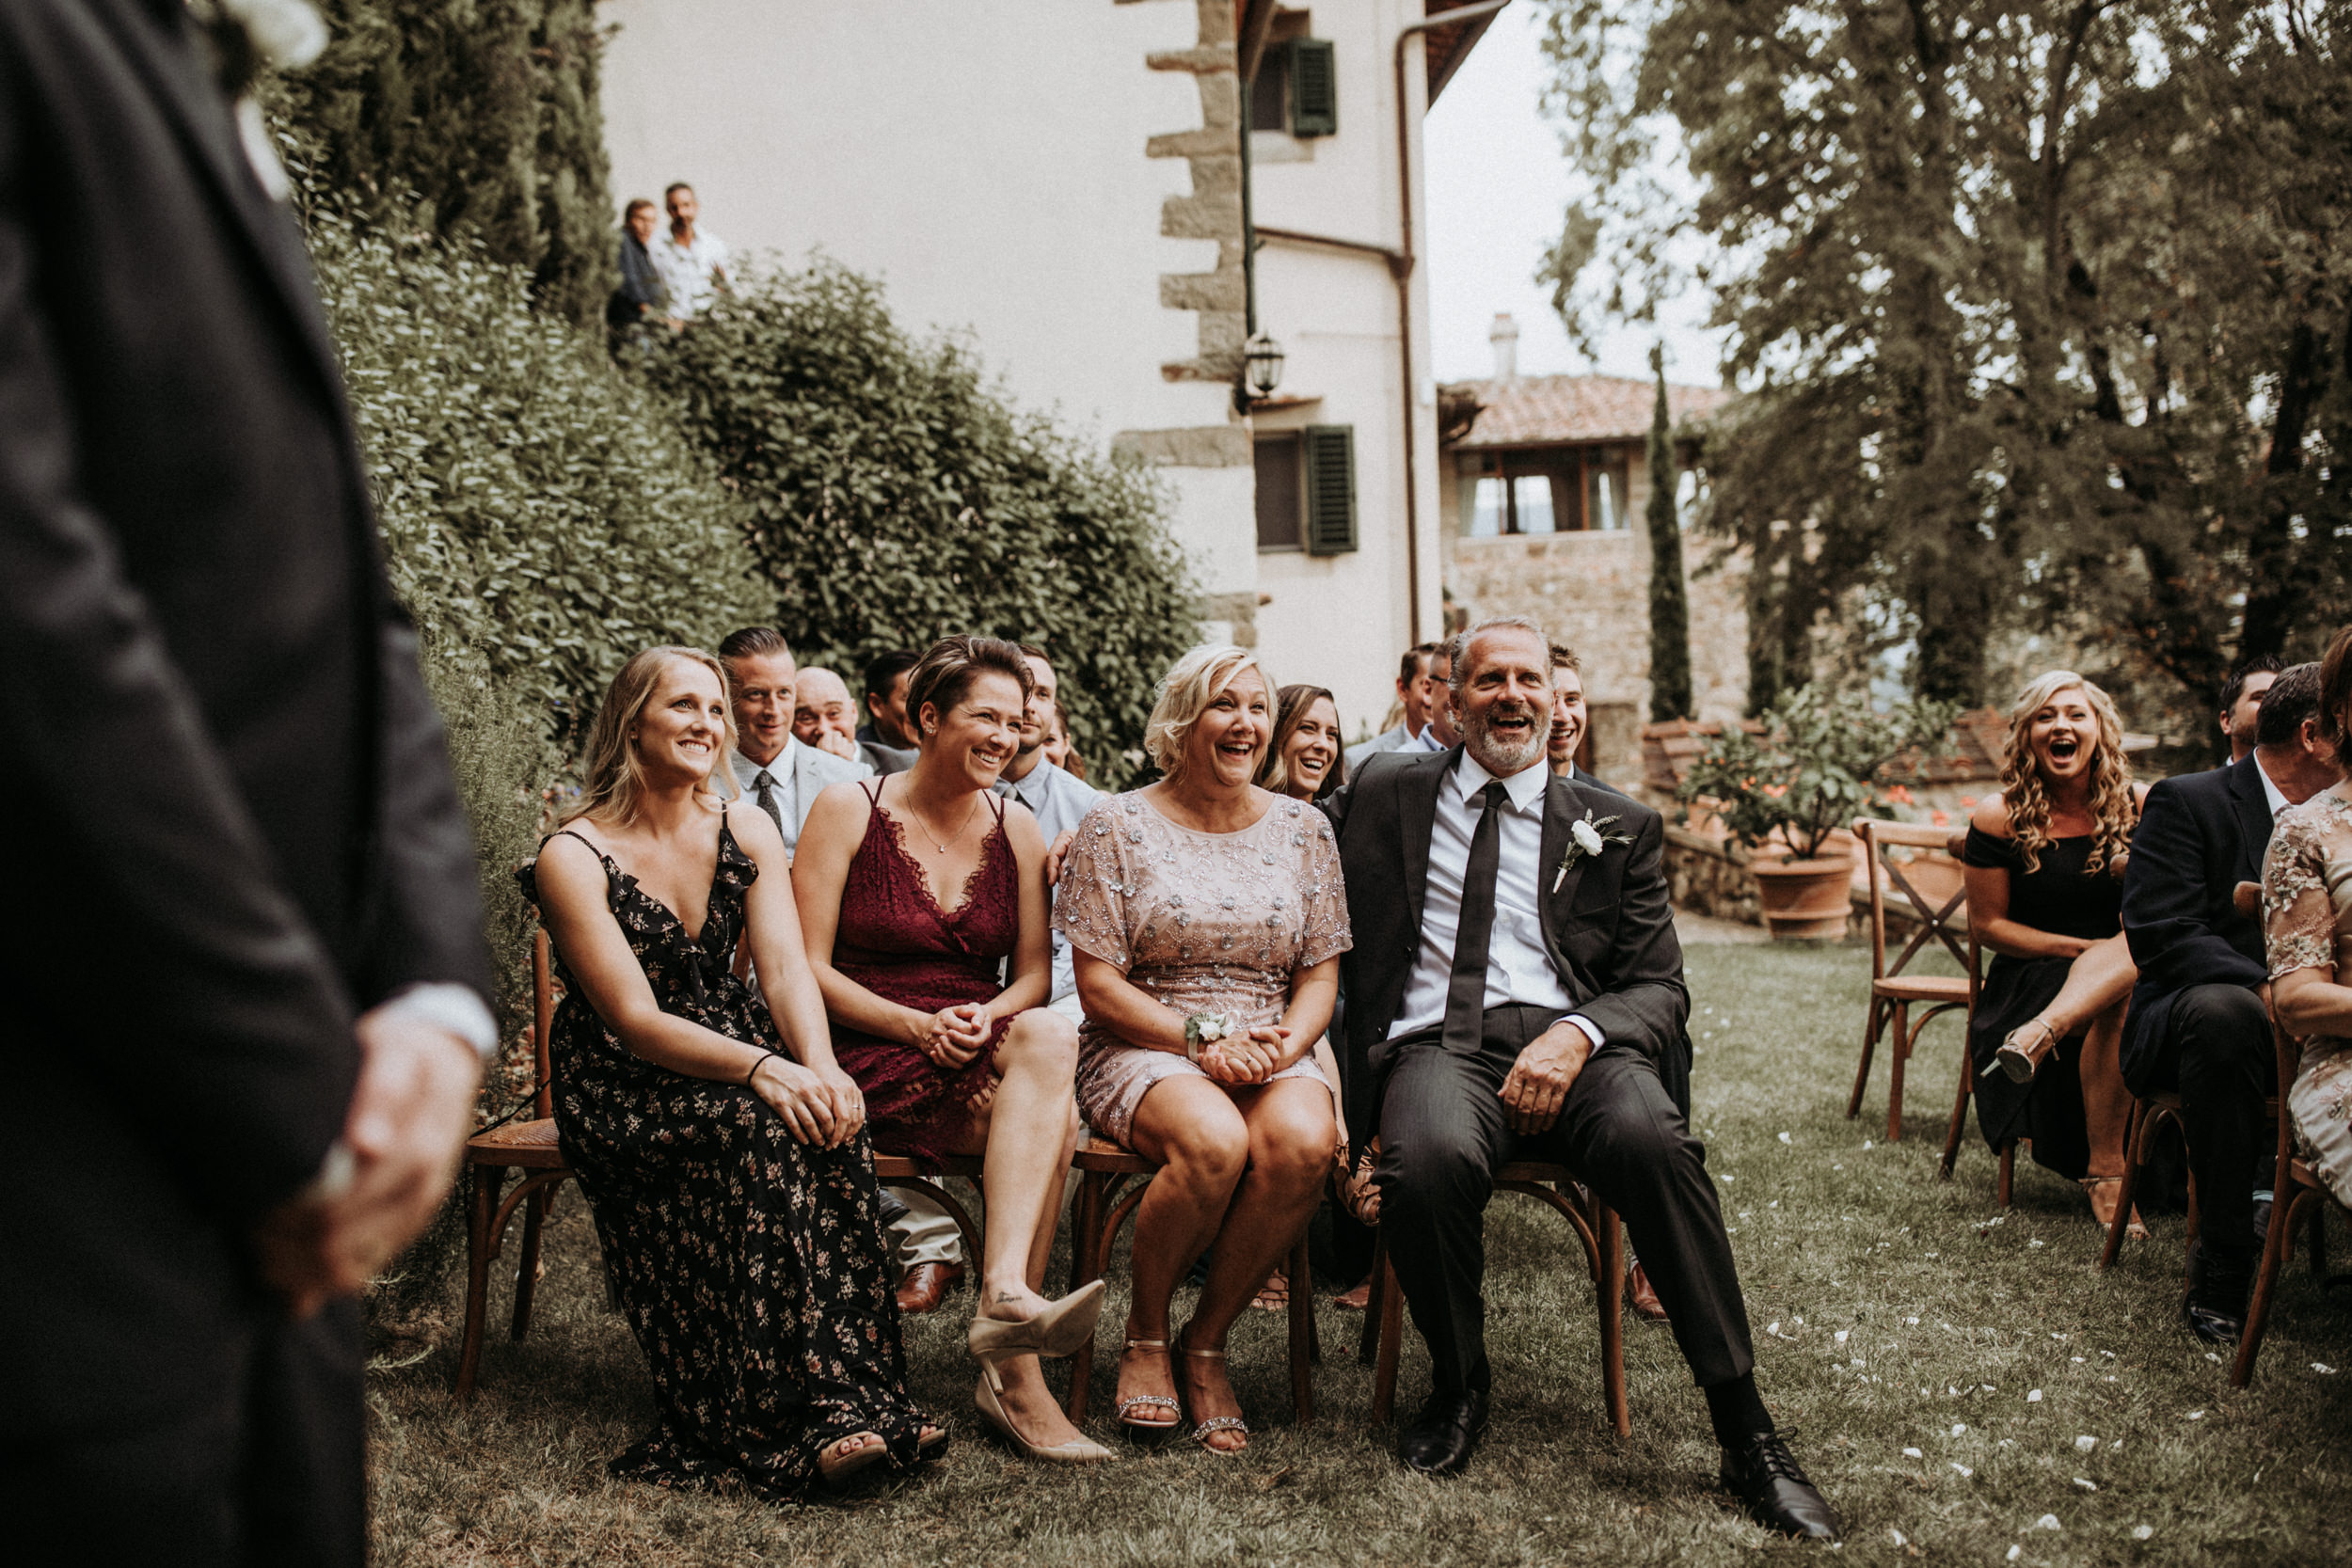 dm_photography_KW_Tuscanyweddingday_239